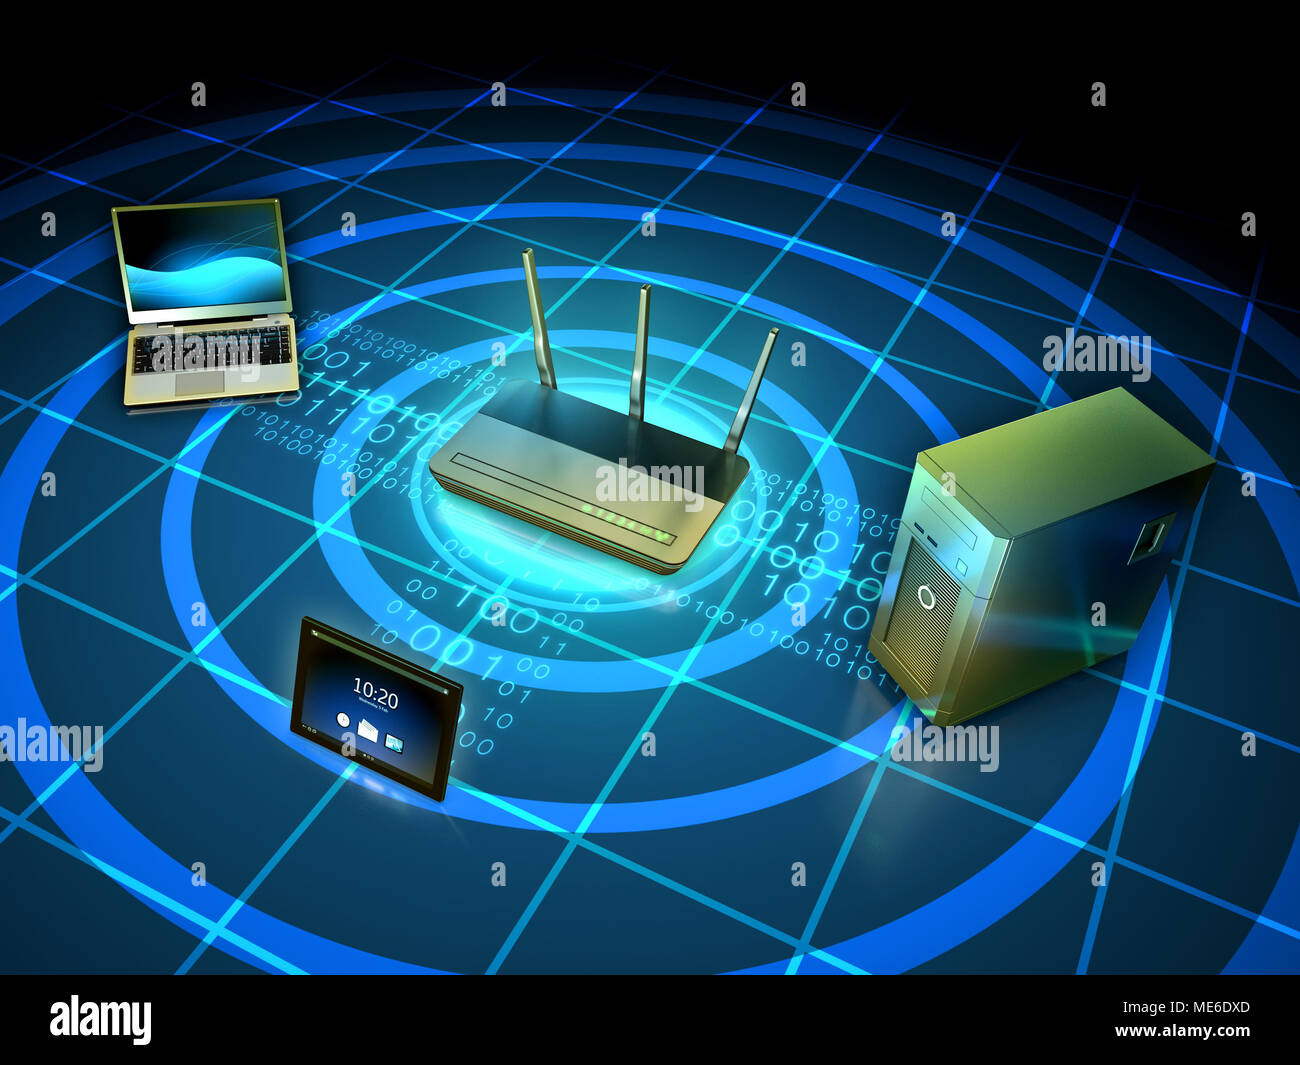 wireless network connecting a laptop workstation and tablet 3d illustration ME6DXD wireless network connecting a laptop, workstation and tablet 3d